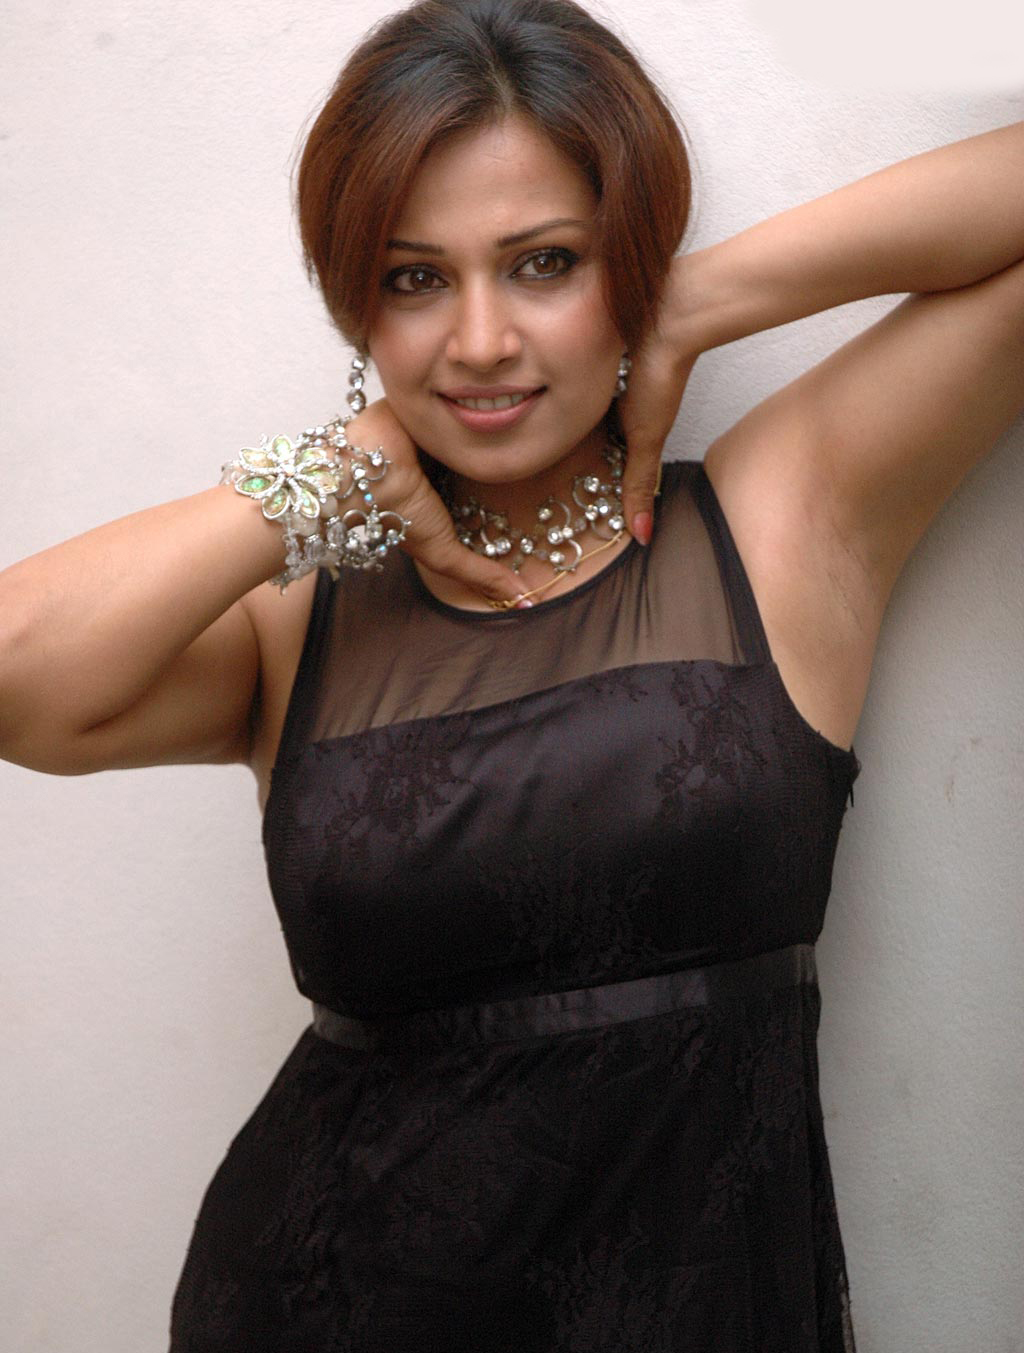 Pictures from indian movies and actress: Asha saini sexy armpits Shefali Sharma Hot